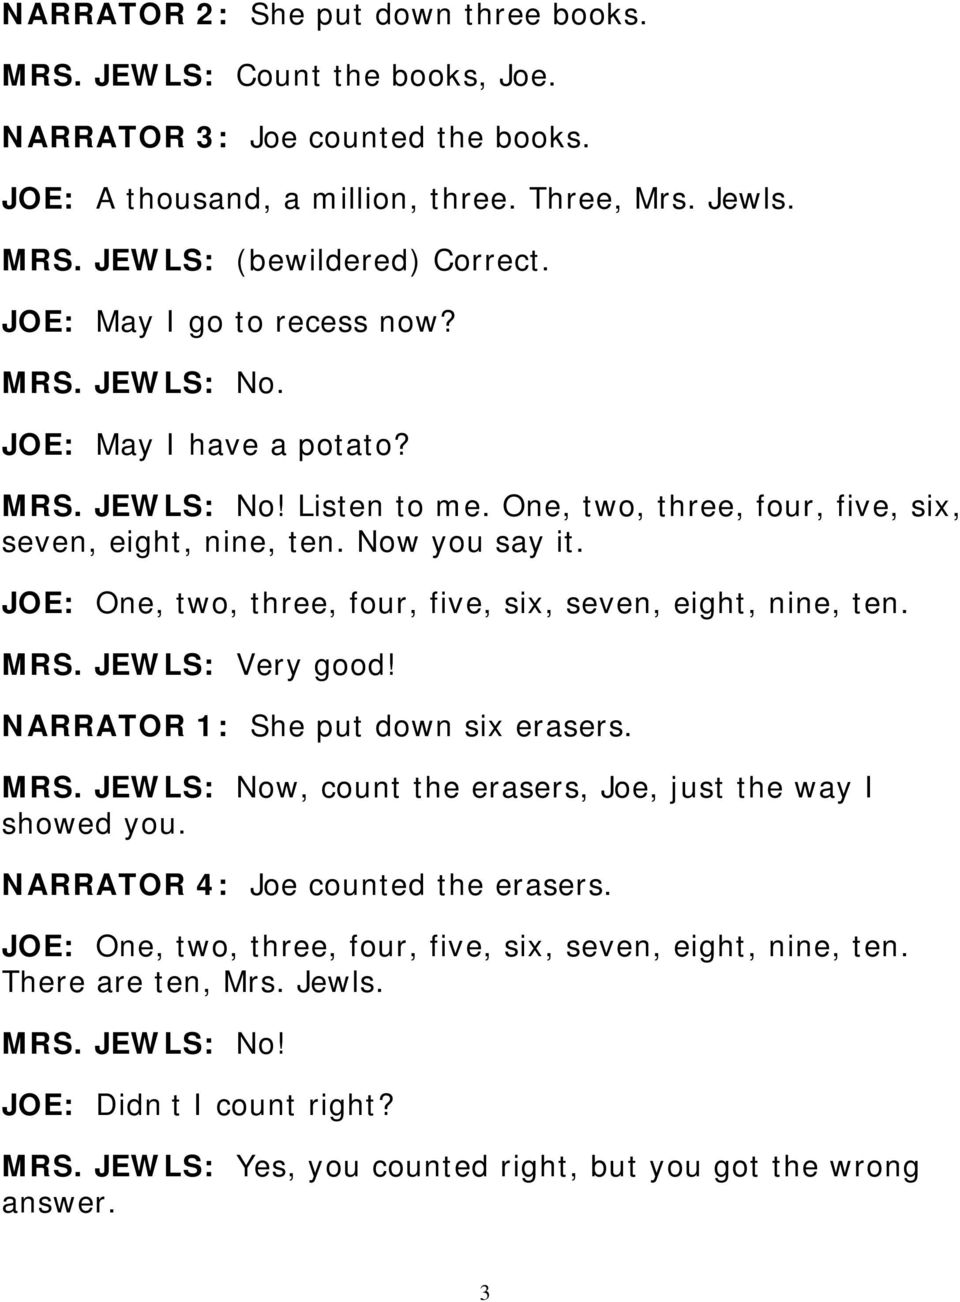 JOE: One, two, three, four, five, six, seven, eight, nine, ten. MRS. JEWLS: Very good! NARRATOR 1: She put down six erasers. MRS. JEWLS: Now, count the erasers, Joe, just the way I showed you.